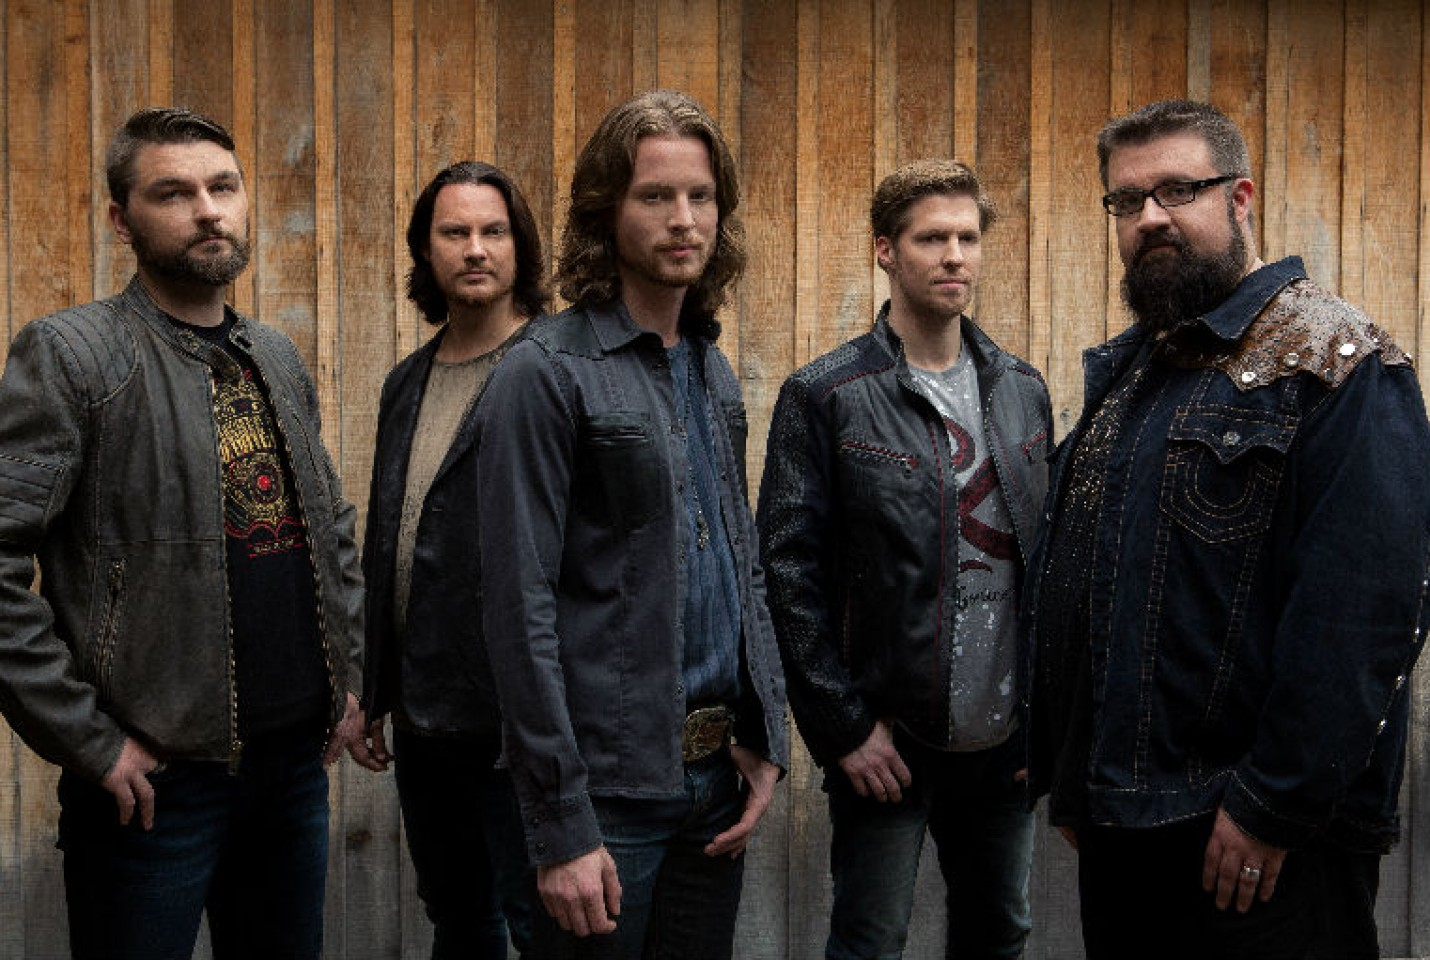 Home Free Release Much Anticipated New Track